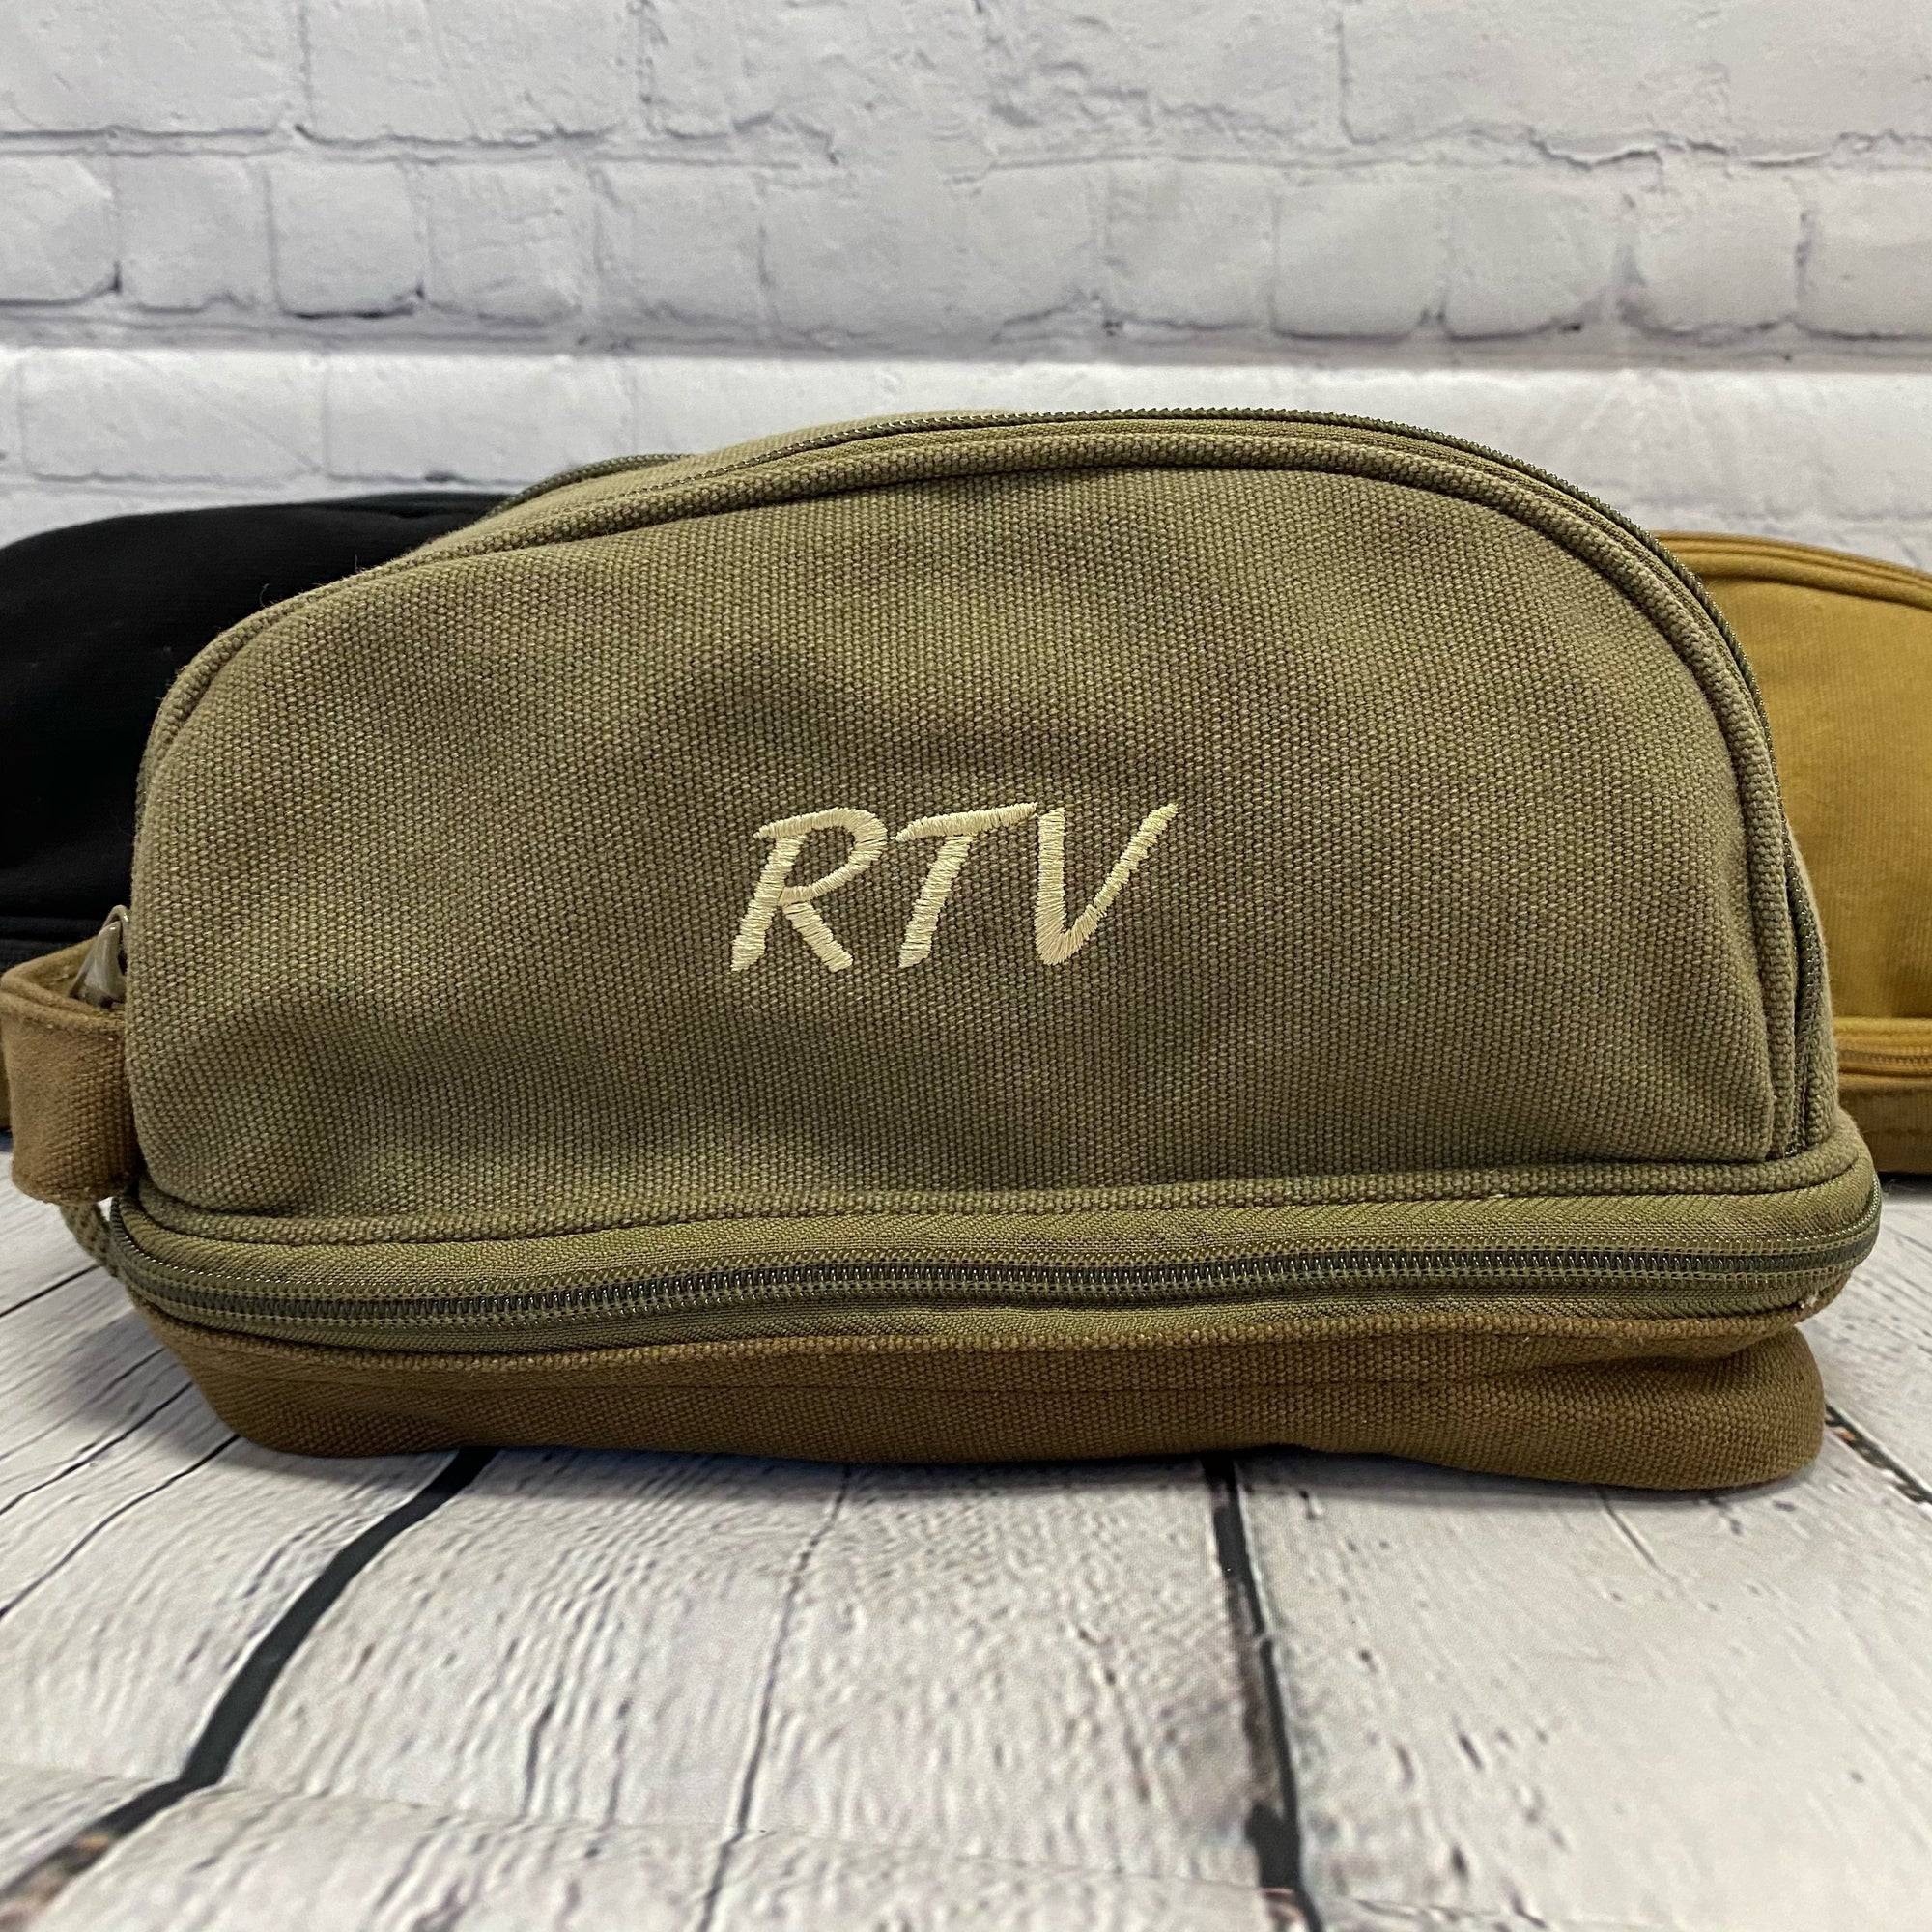 Travelers Toiletry Bag